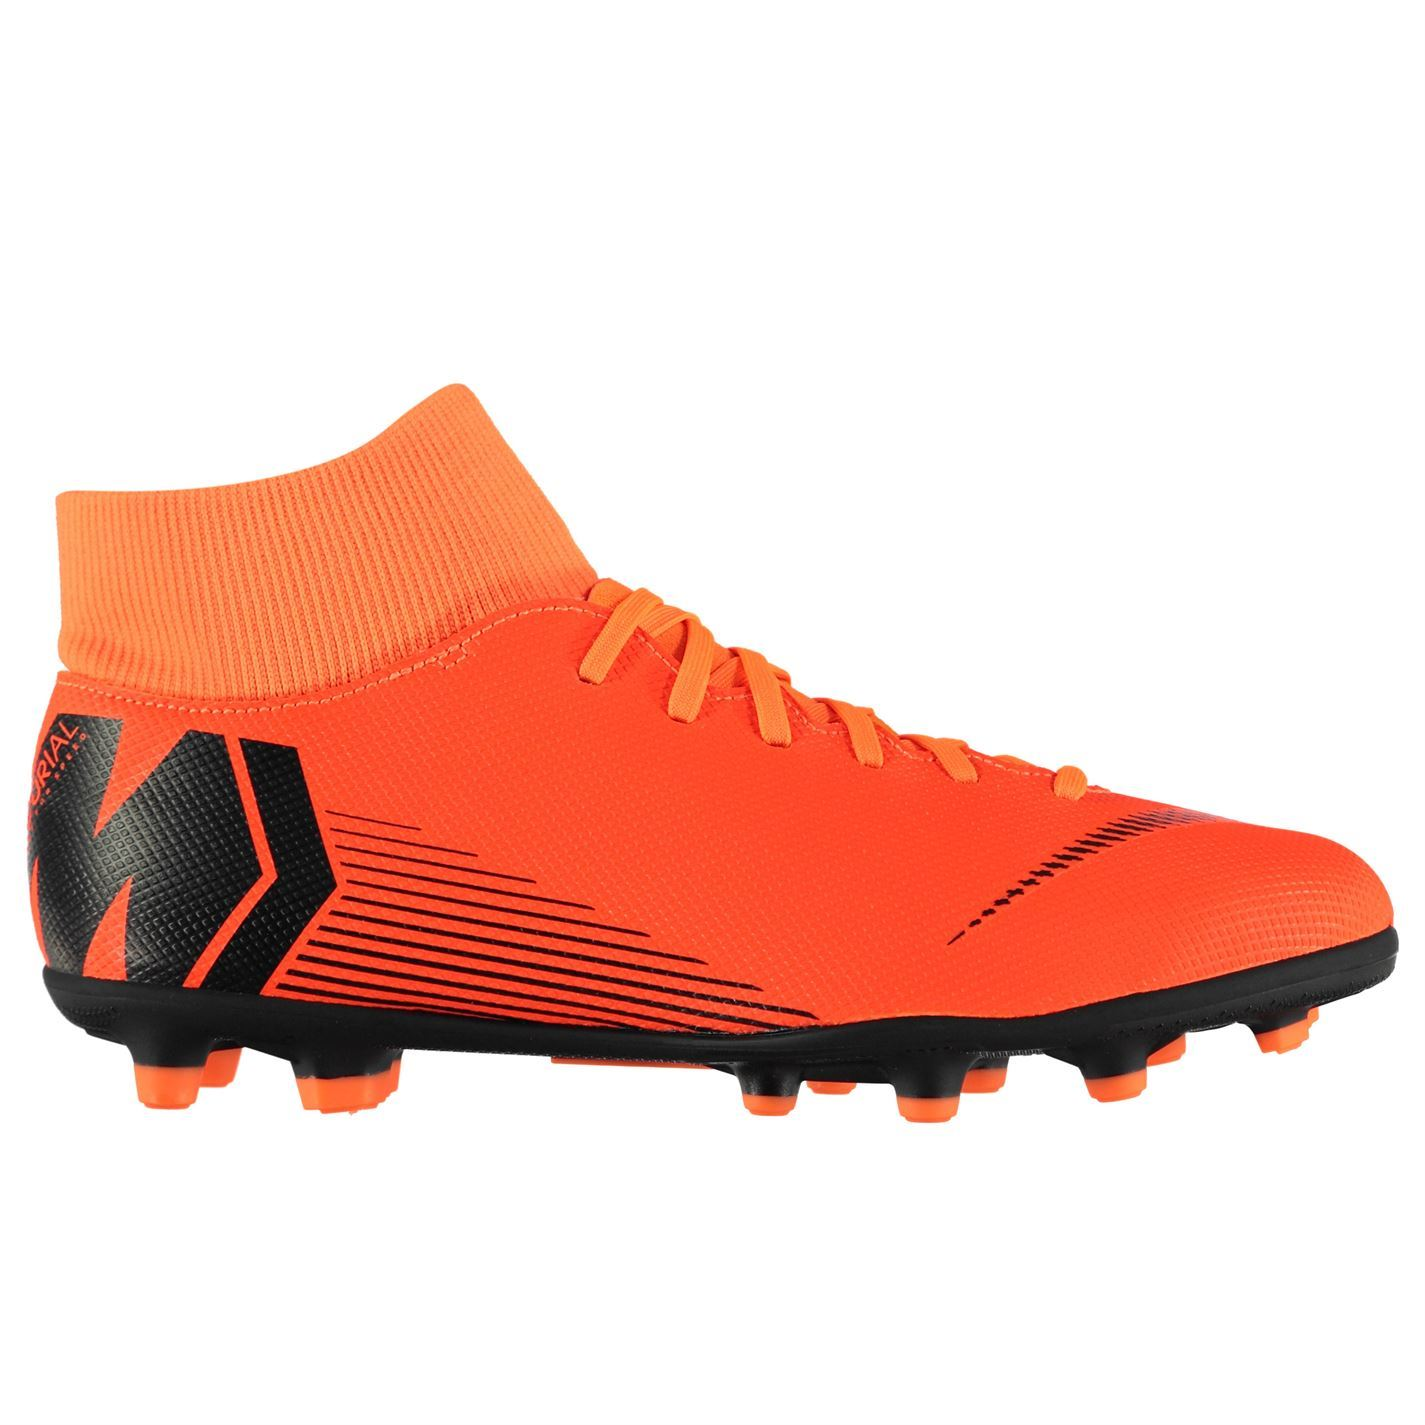 Details about Nike Mercurial Superfly Club Firm Ground Football Boots Mens  Orange Soccer Cleat 8f442b09c7f2